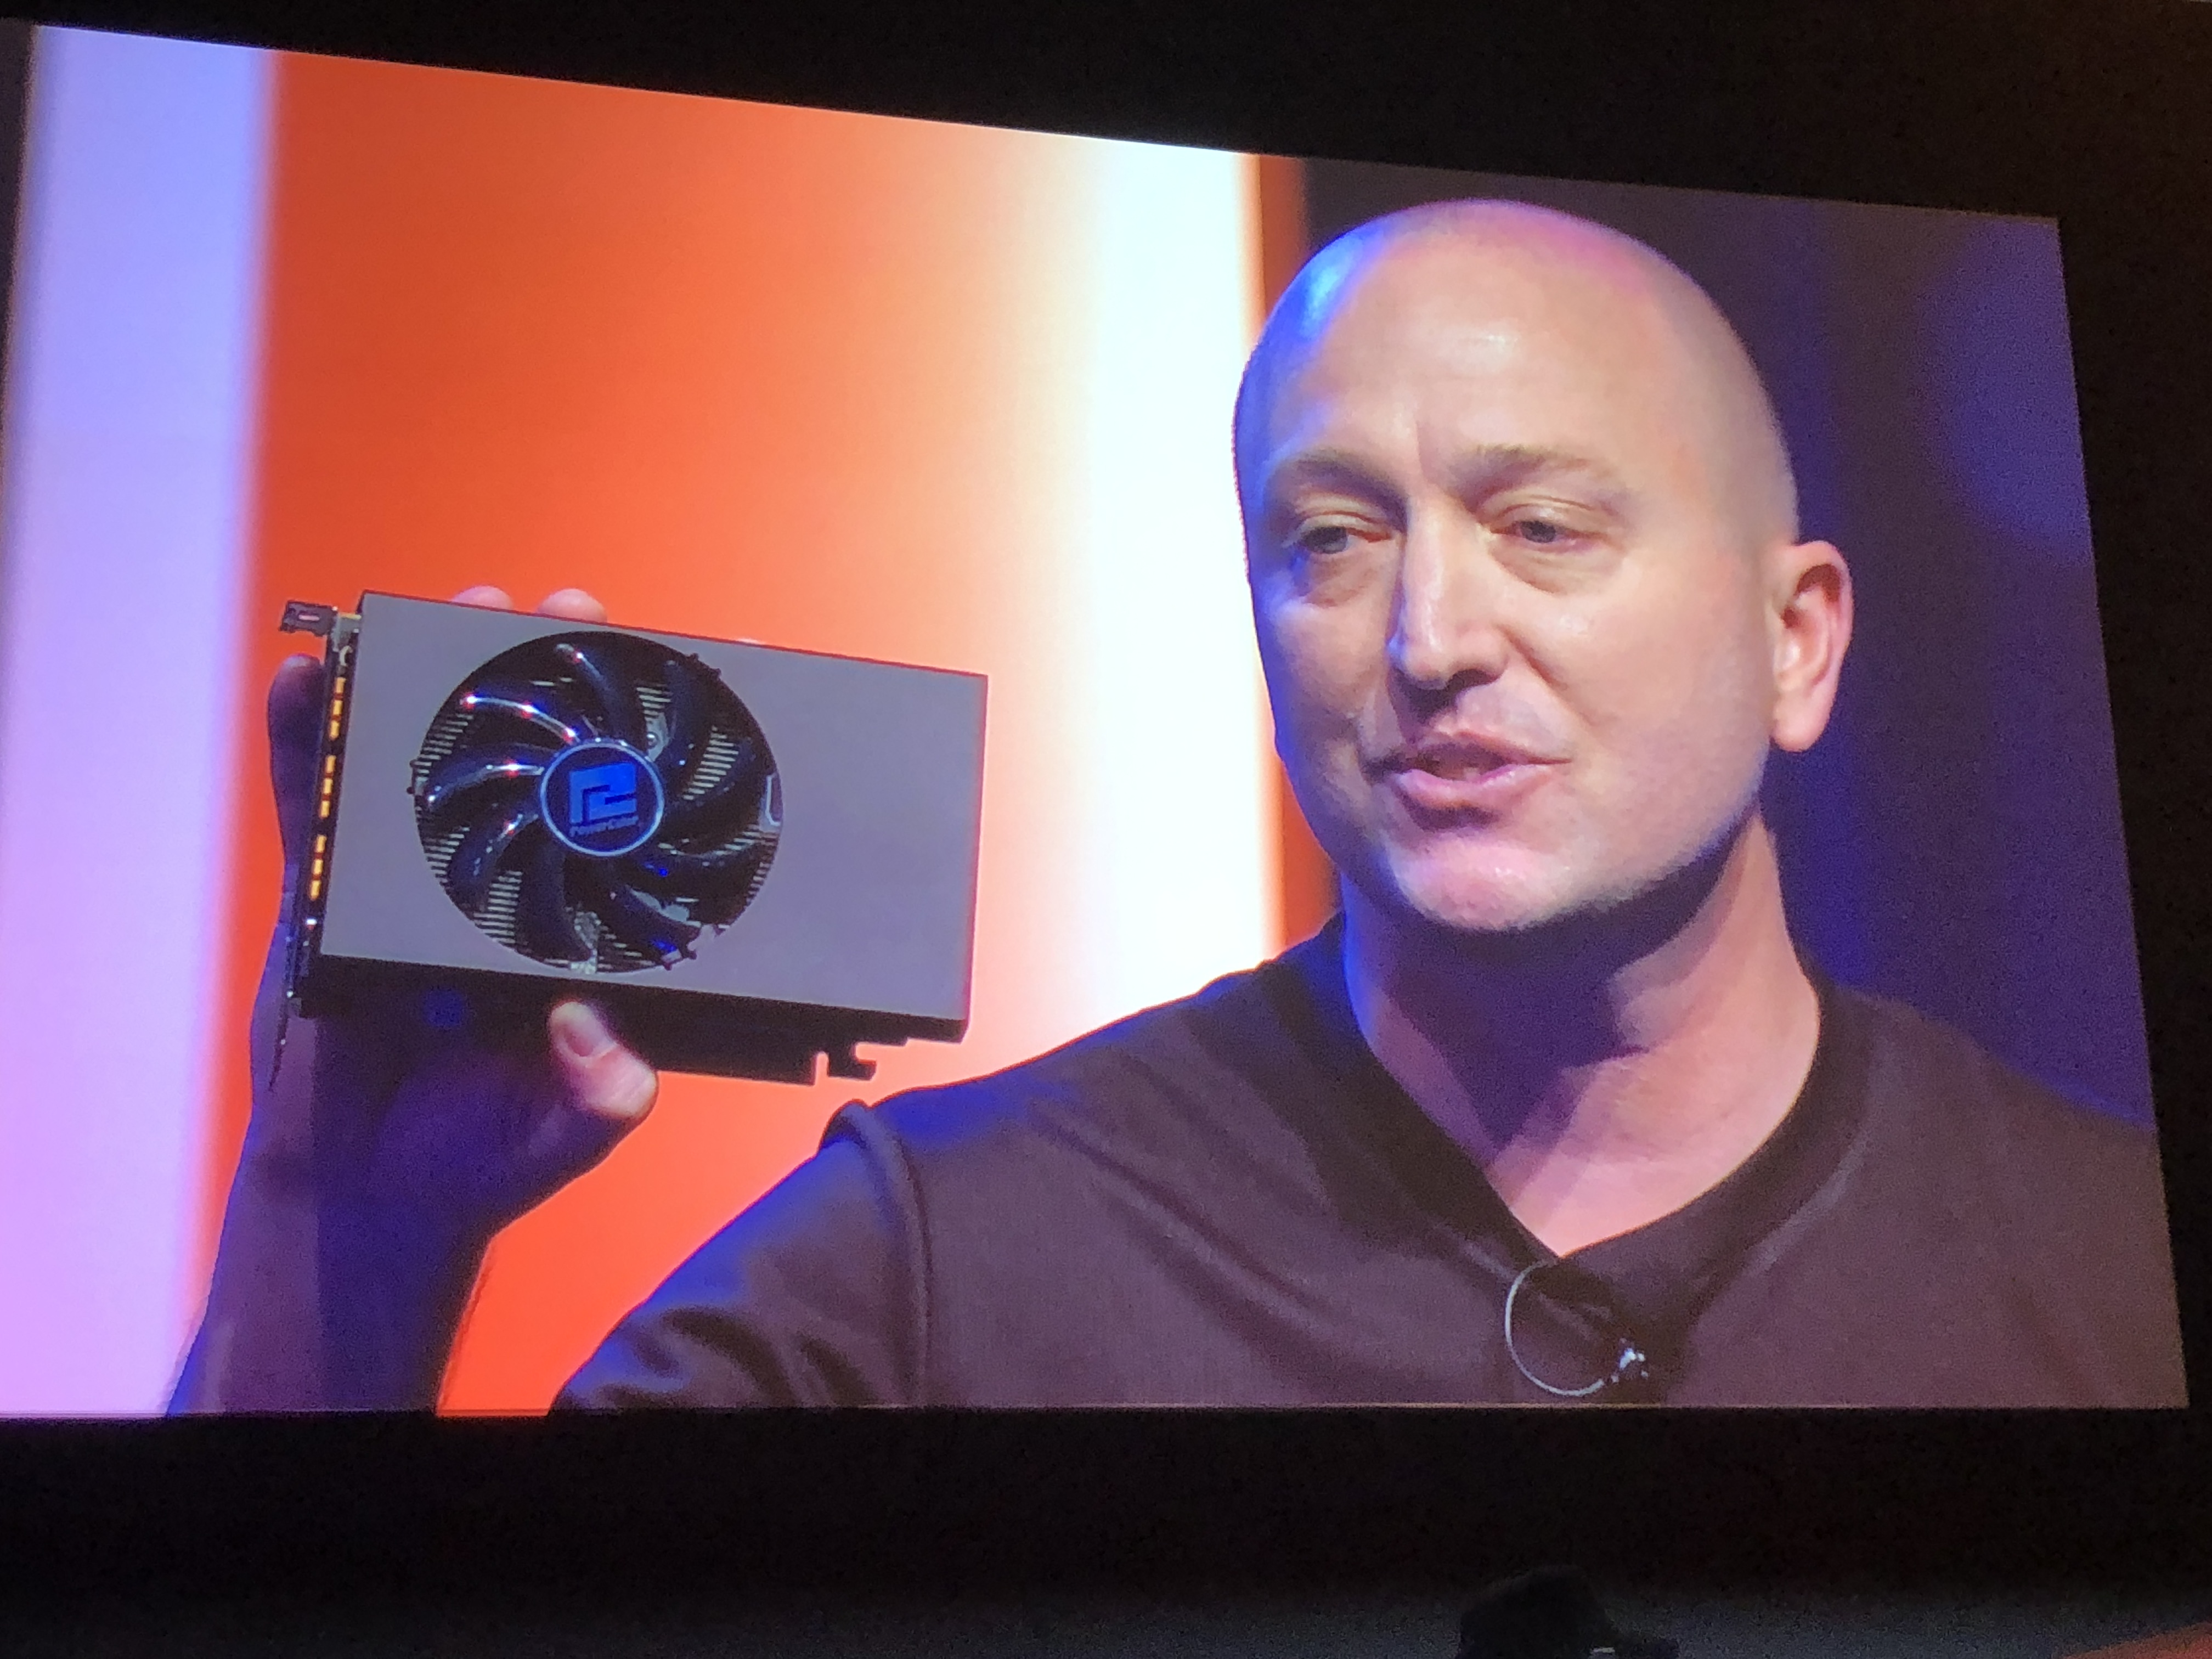 AMD announces Threadripper 2 processors - AMD